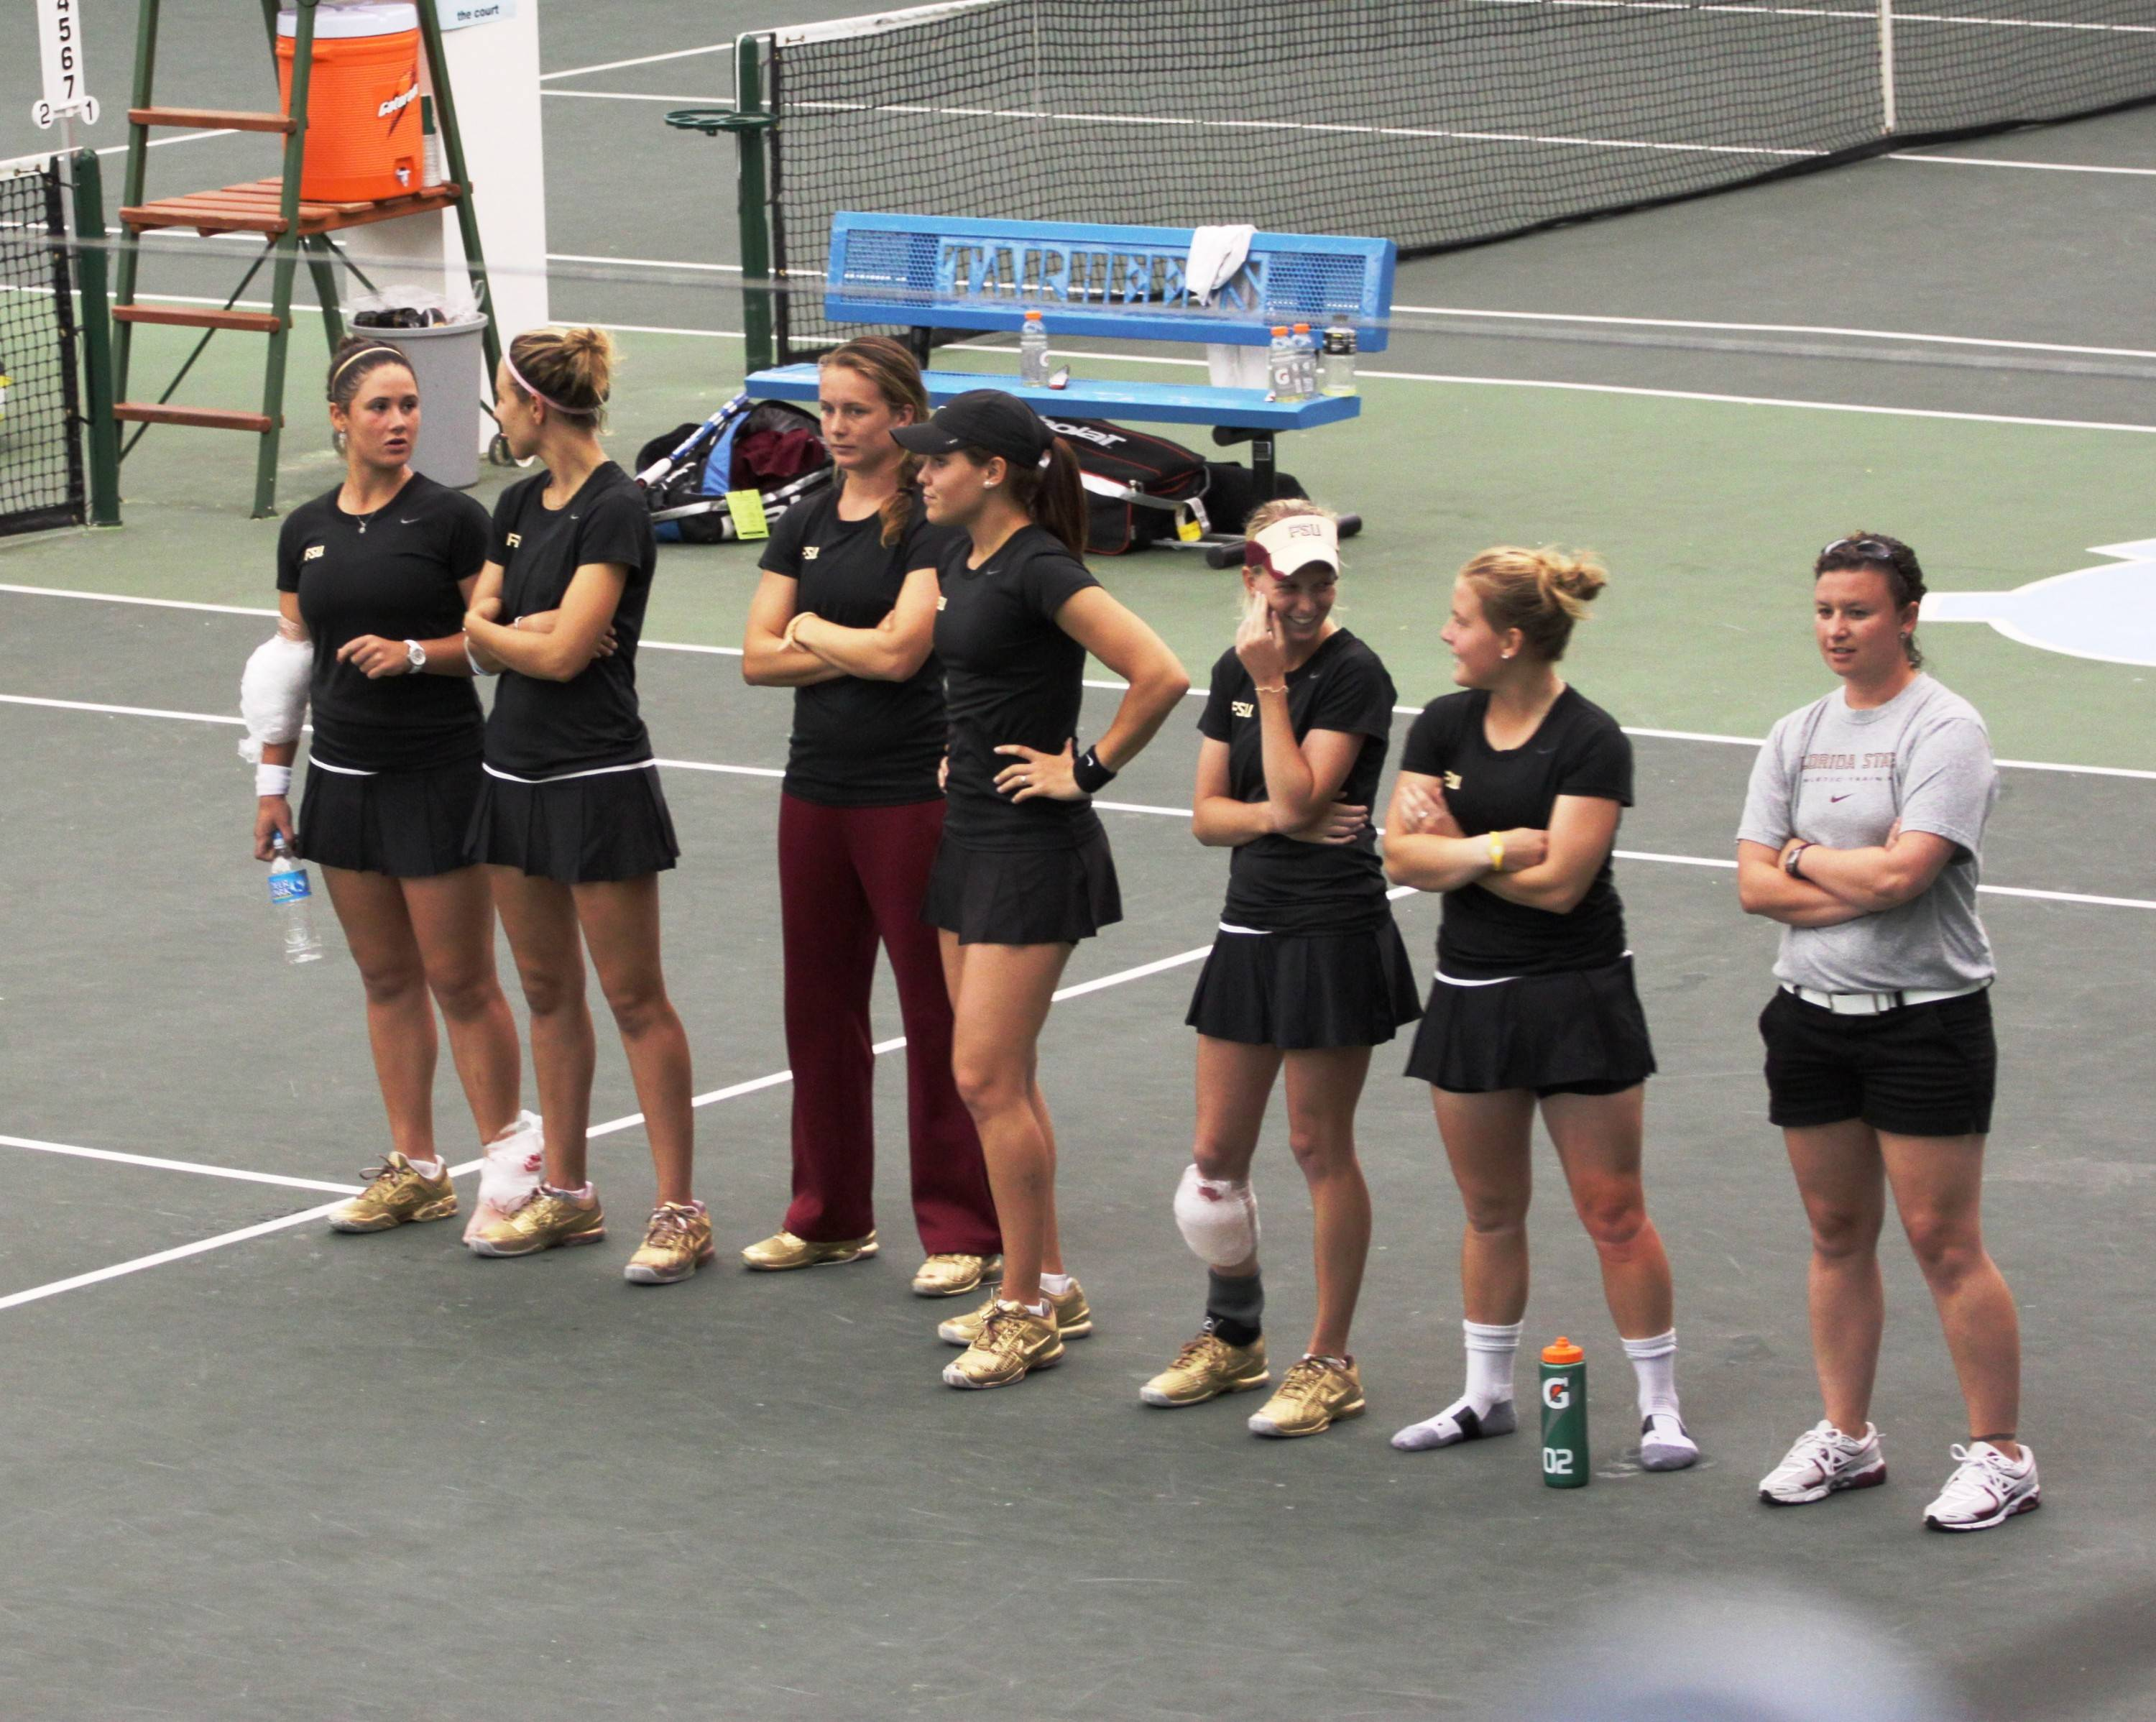 Team watches the final match on court four.